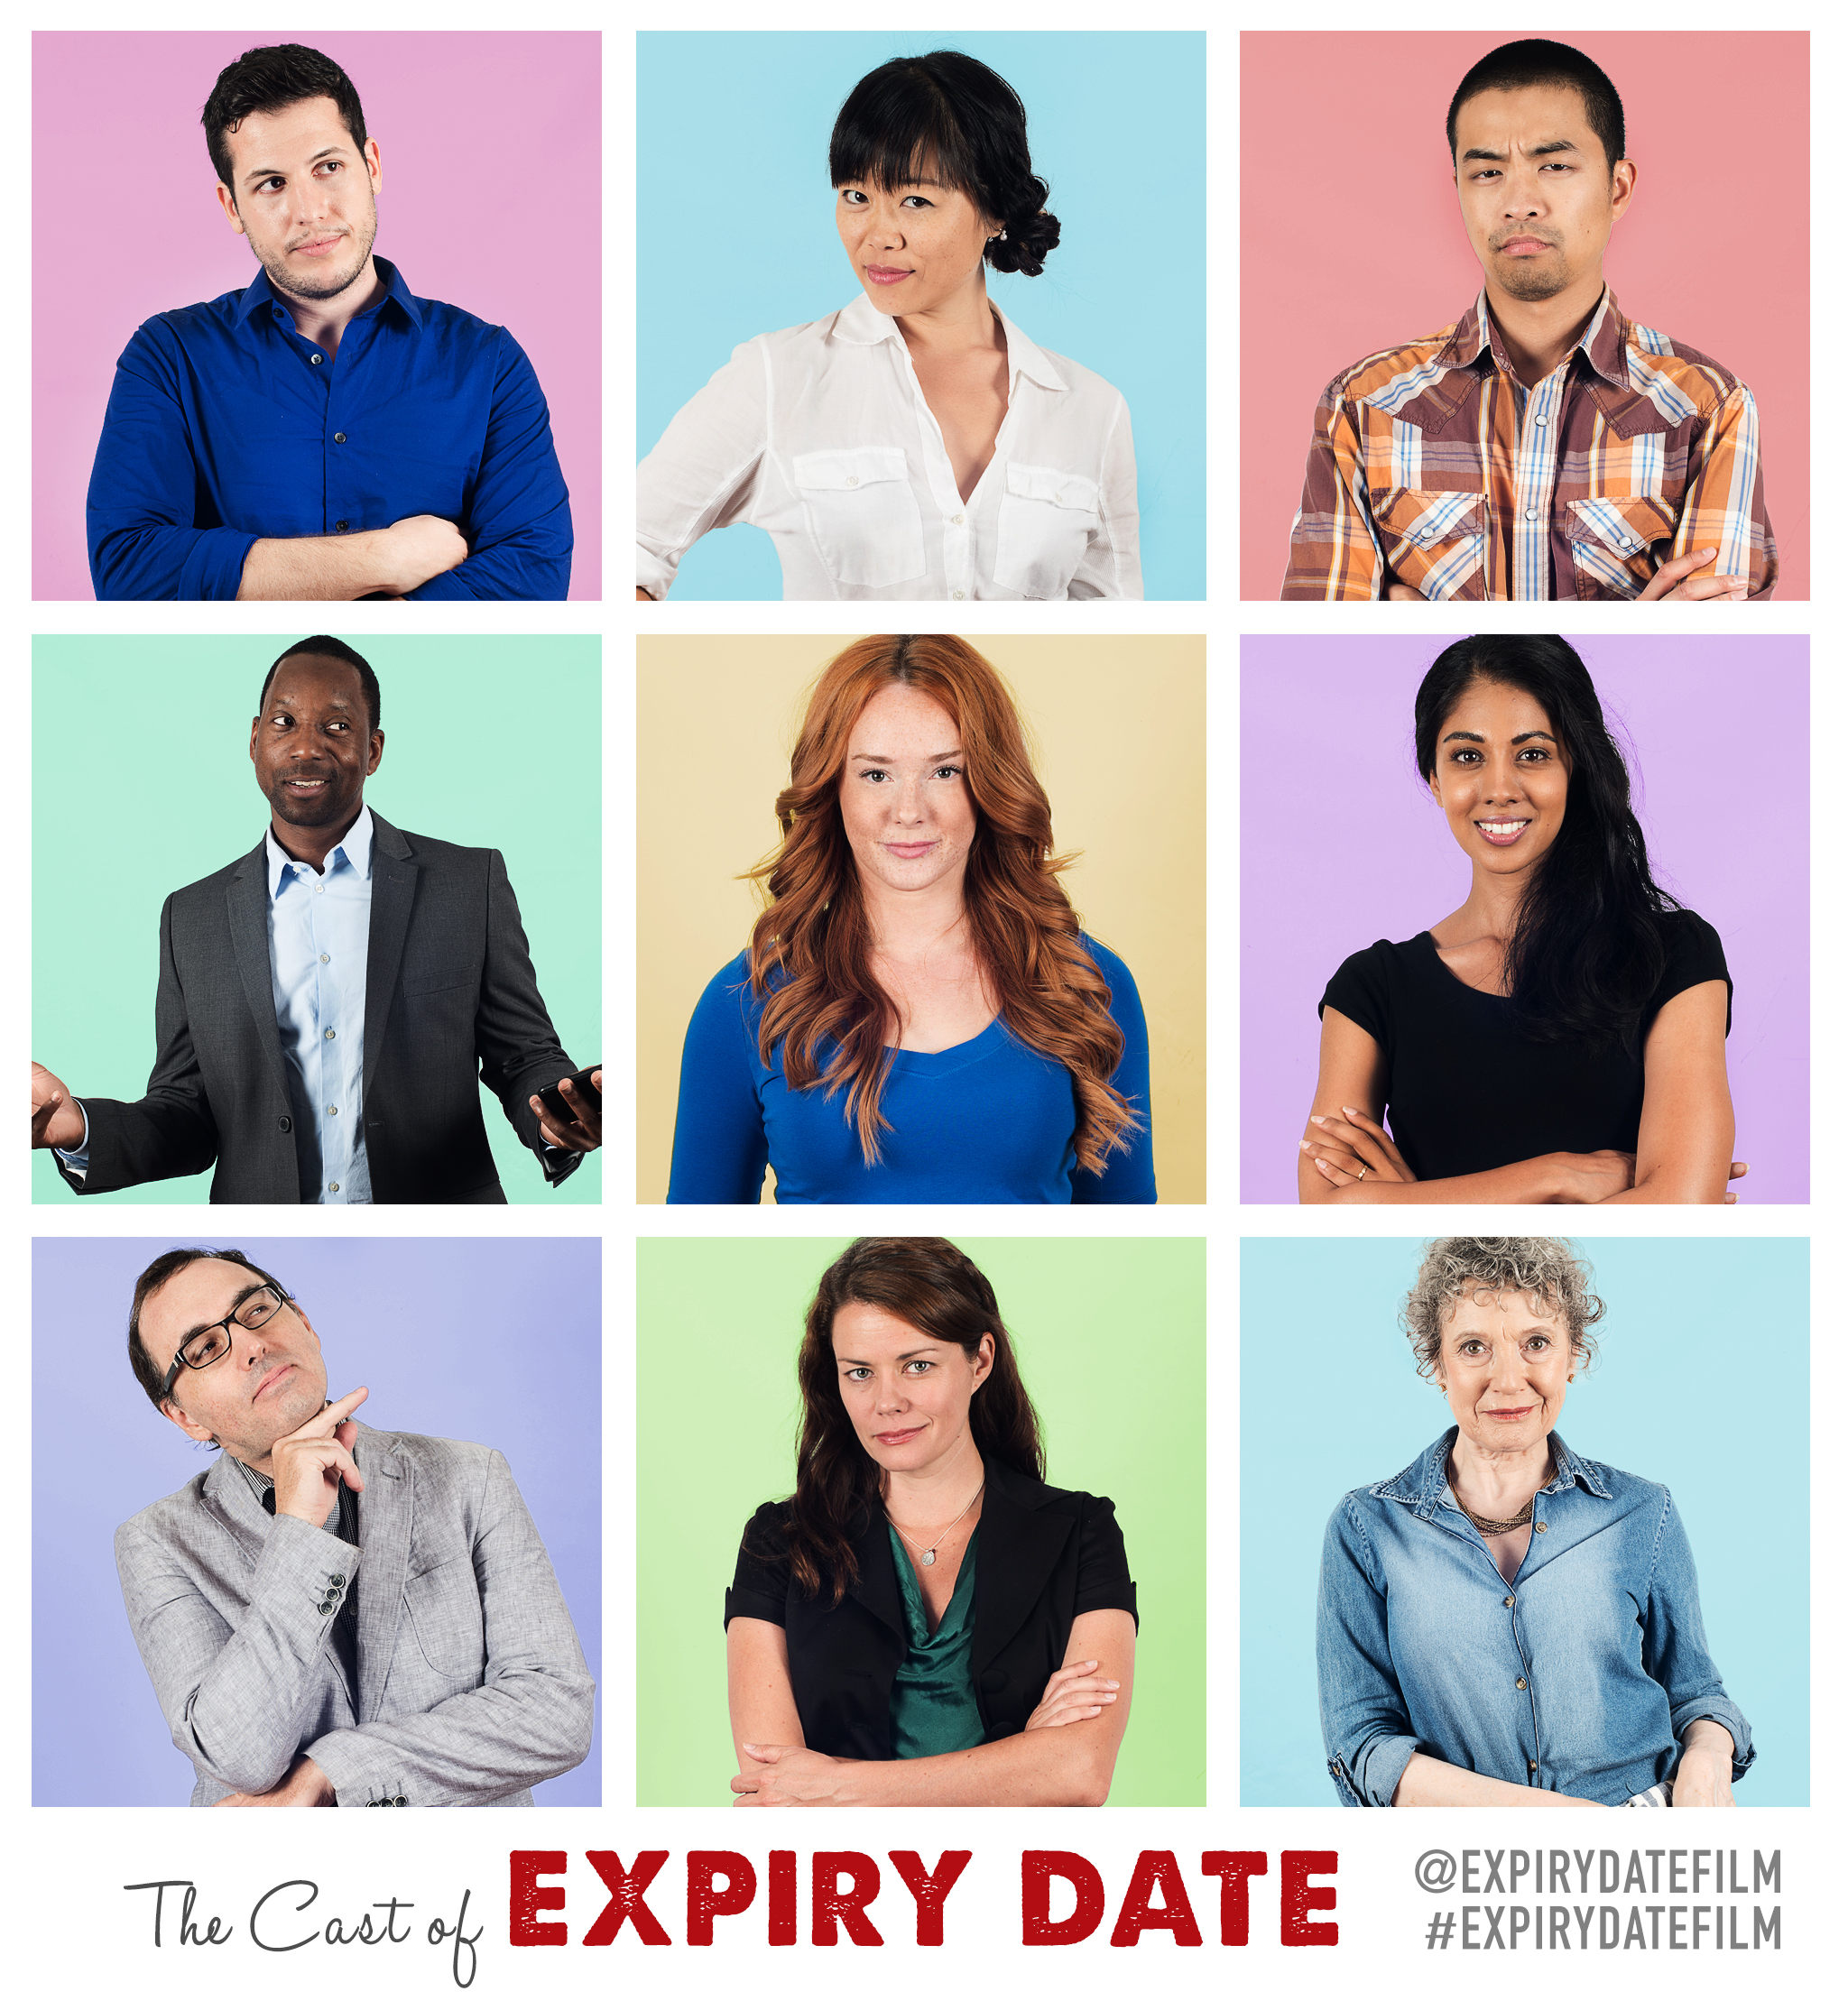 Expiry Date Film Character Poster